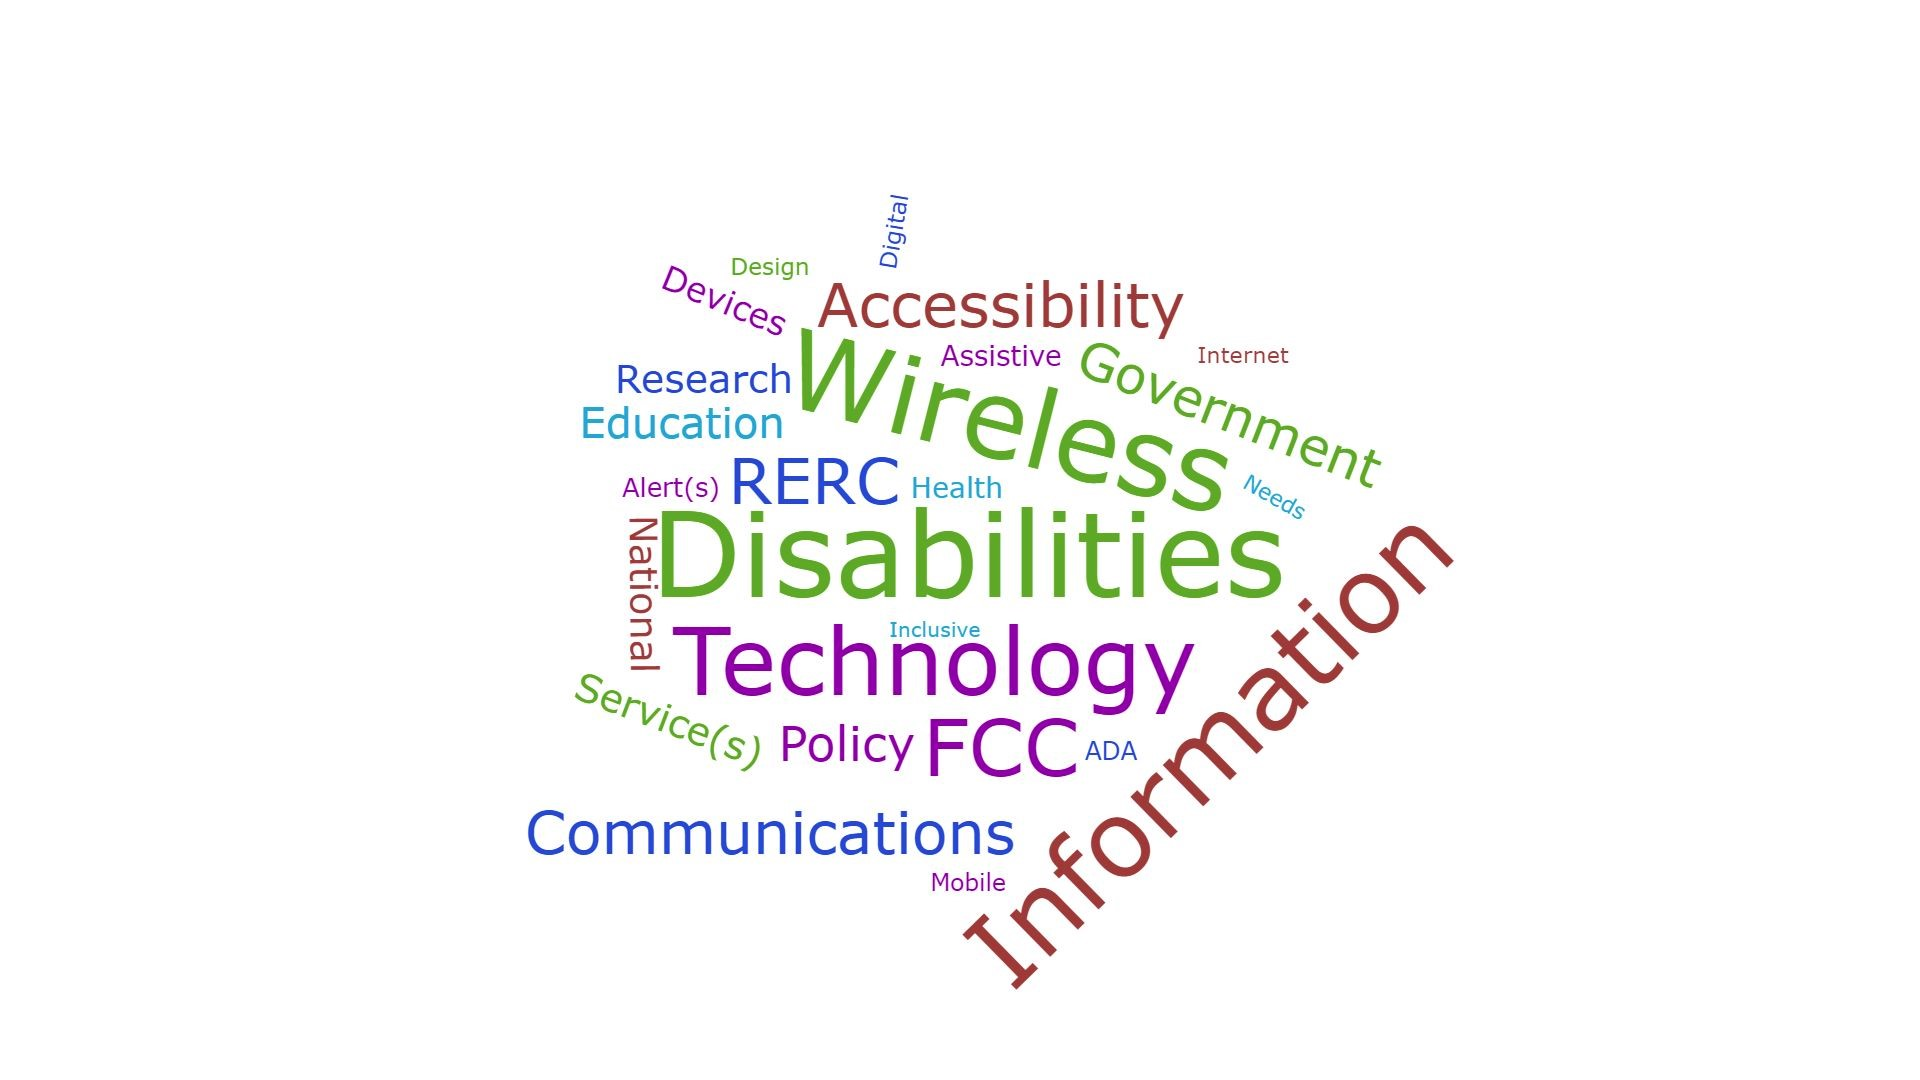 Image shows the top 25 key words with those that appeared with greater frequency being larger than words that appeared less frequently.  In descending order, the words are: Disabilities  Wireless Information Technology FCC RERC Accessibility Emergency Communications Government Policy Education Research  Service(s) National Devices Health Assistive Alert(s) ADA Digital Mobile Design Internet